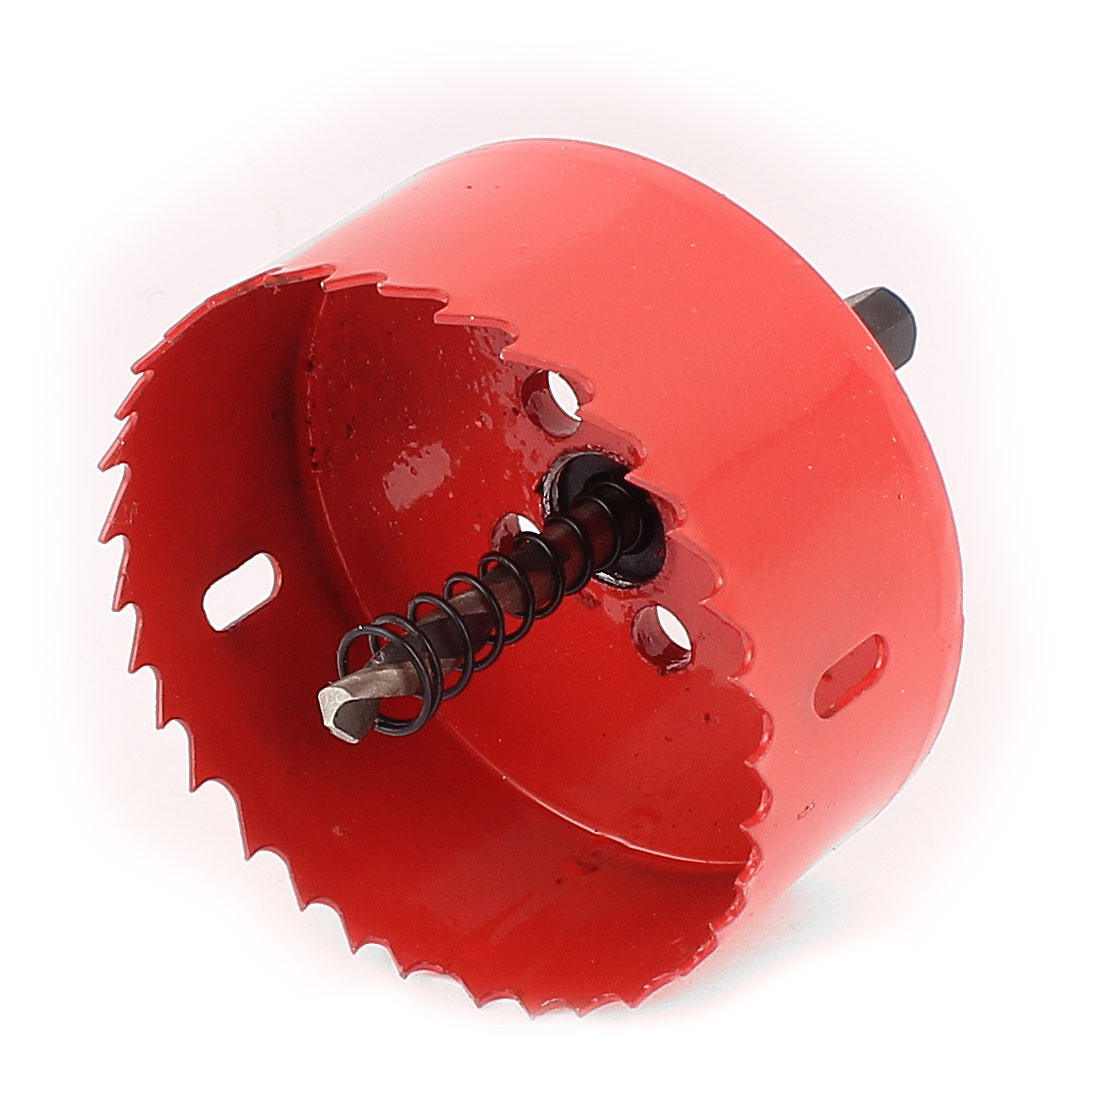 6mm Drill Bit 80mm Cutting Diameter Hole Saw Red for Drilling Wood